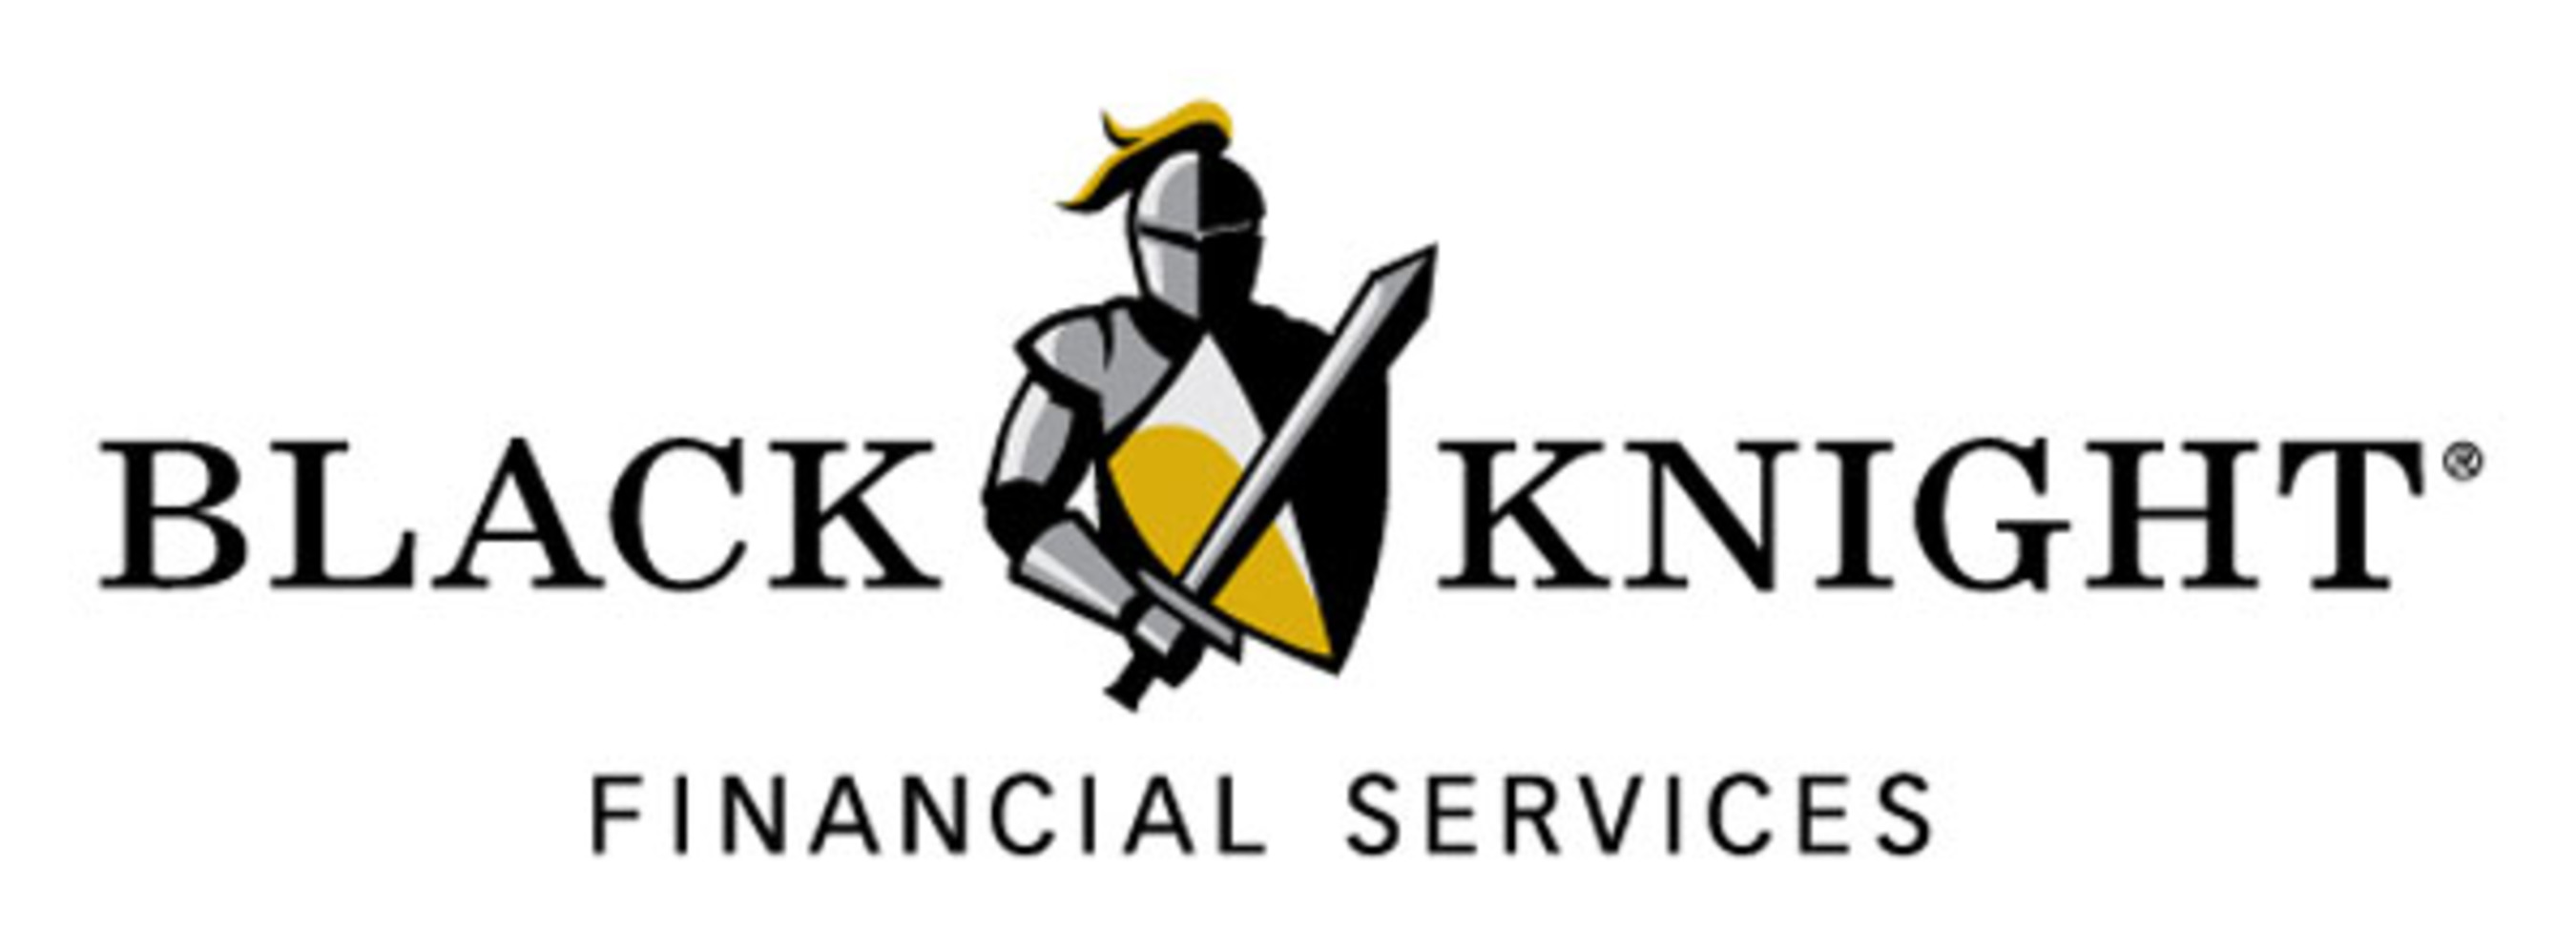 Black Knight Financial Services Acquires Motivity